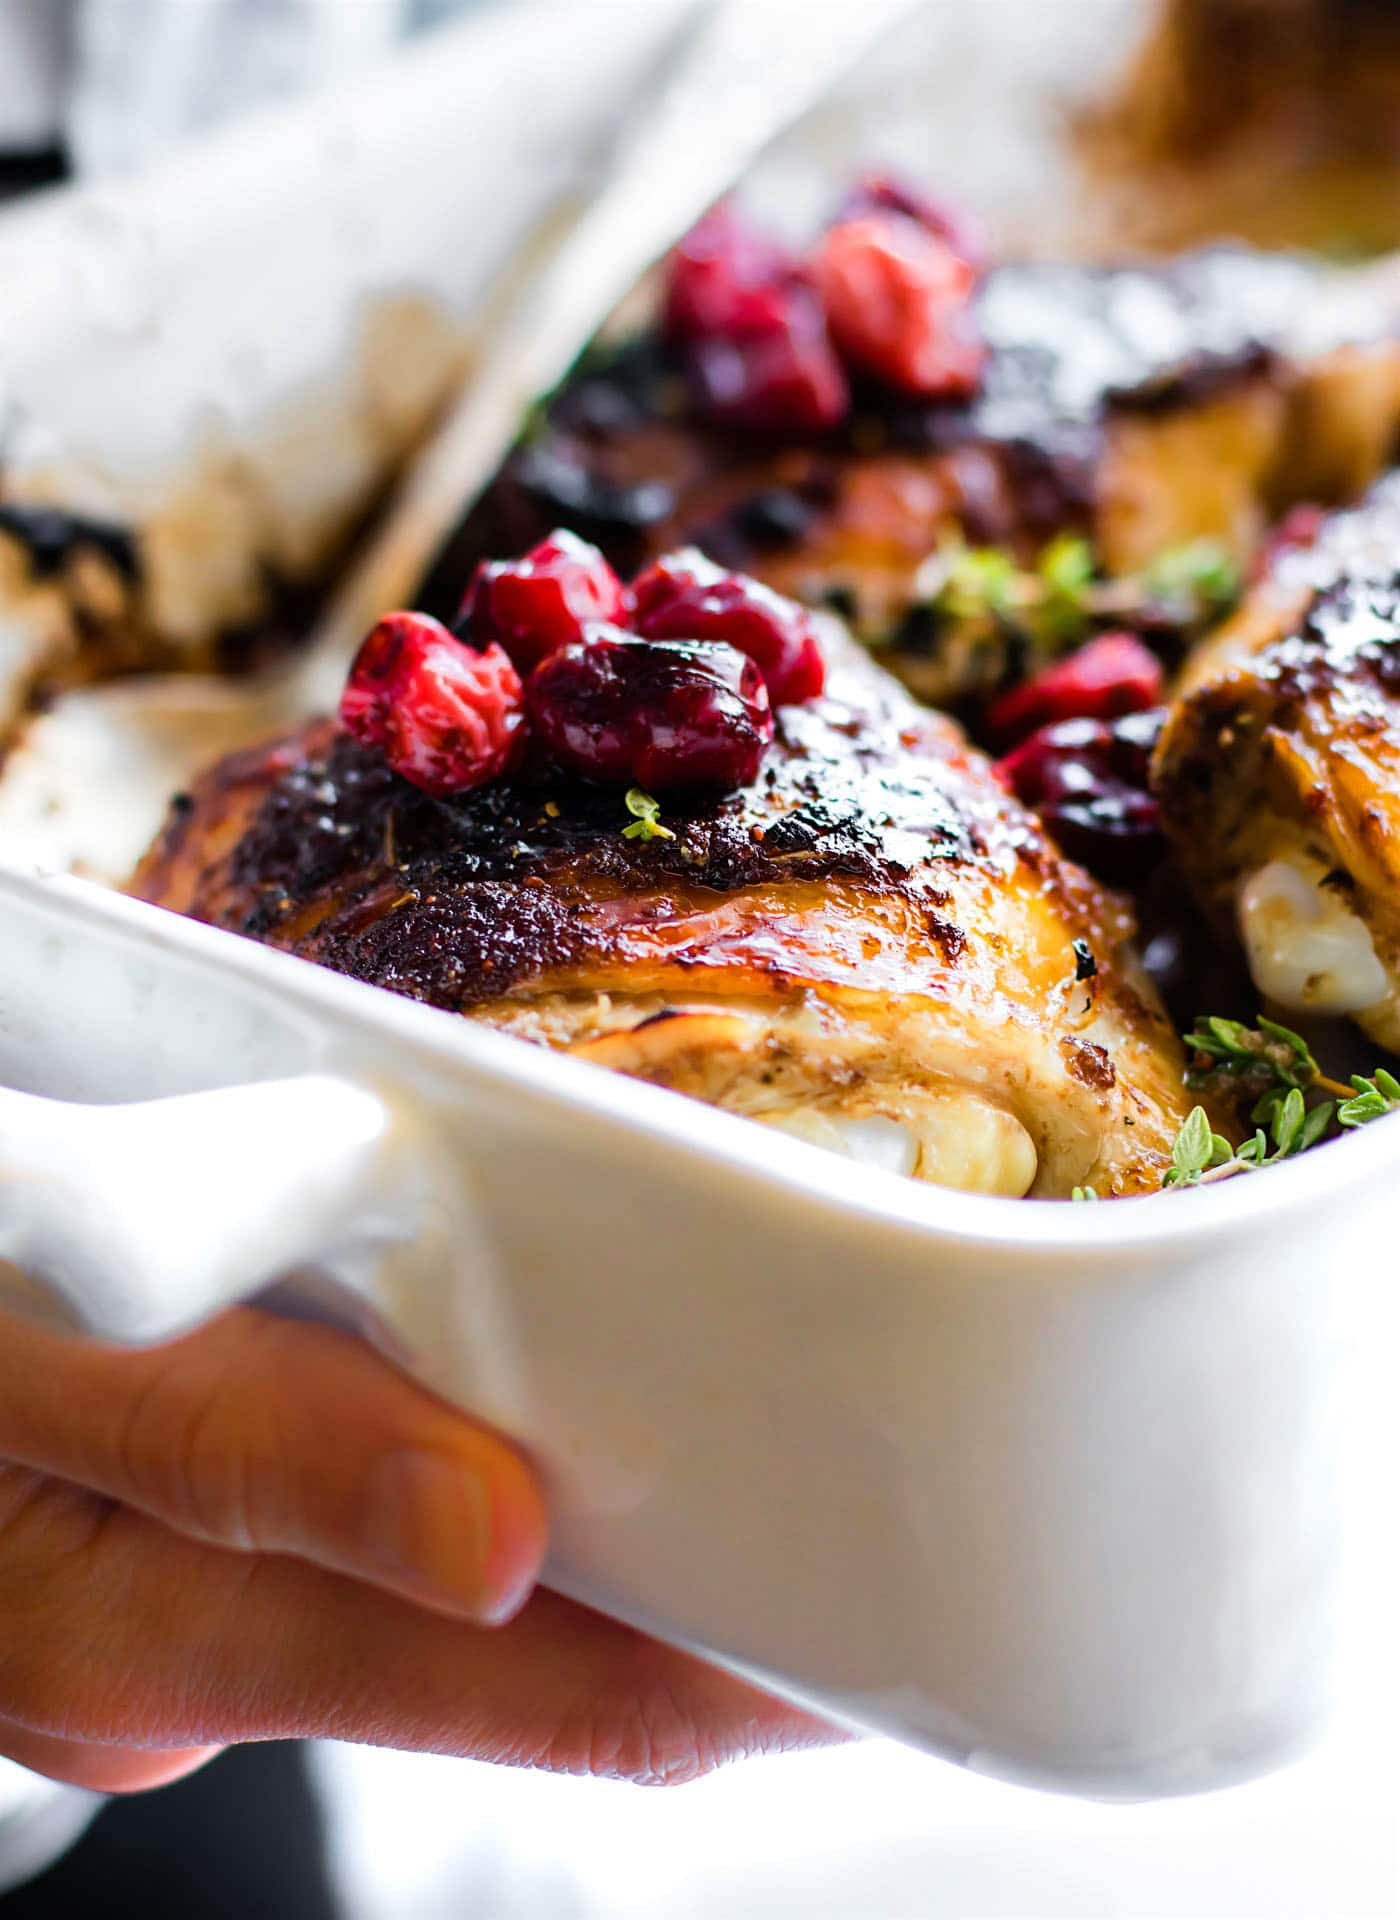 Balsamic Roasted Chicken with Cranberries prepped and cooked in ONE PAN! Yes, your holiday table is complete. This Paleo Cranberry Balsamic Roasted Chicken is a simple yet healthy dinner. A sweet tangy marinade makes this roasted chicken extra juicy and extra crispy. One of our go to meals for meal prep too.